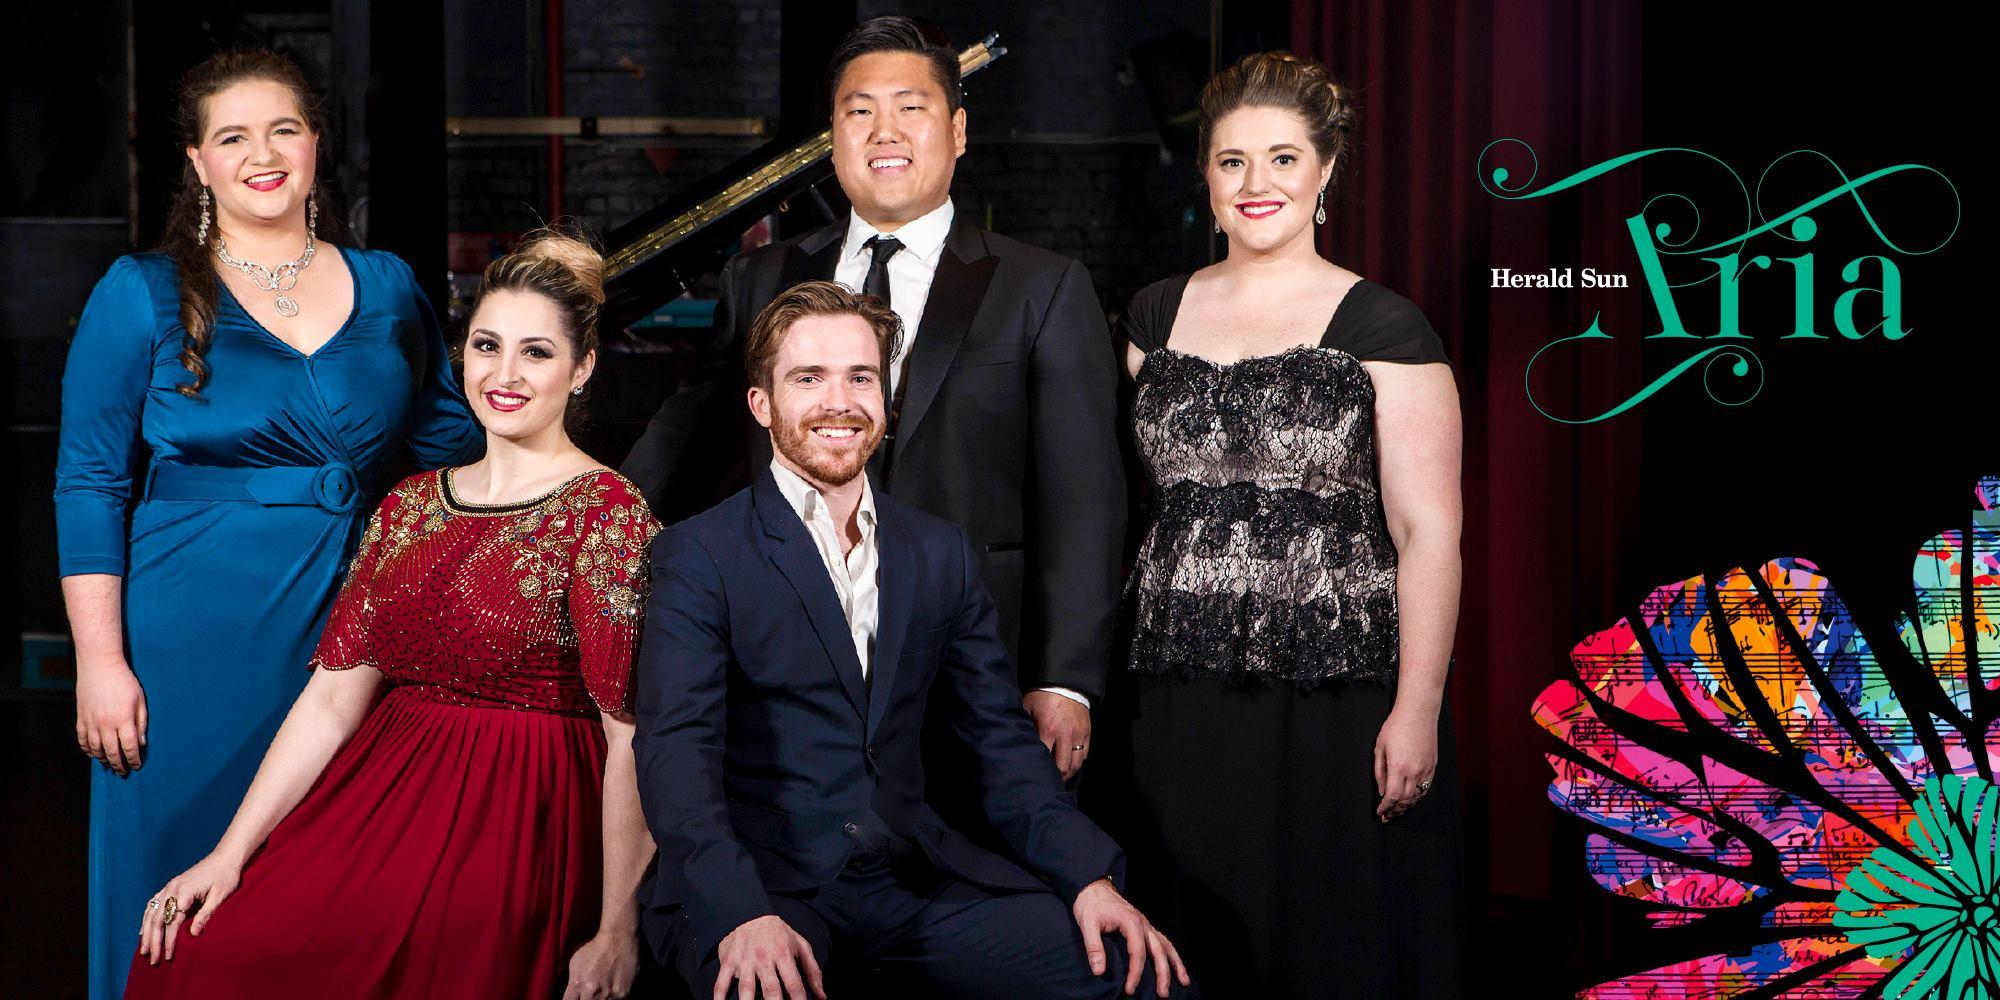 92nd Herald Sun Aria Competition